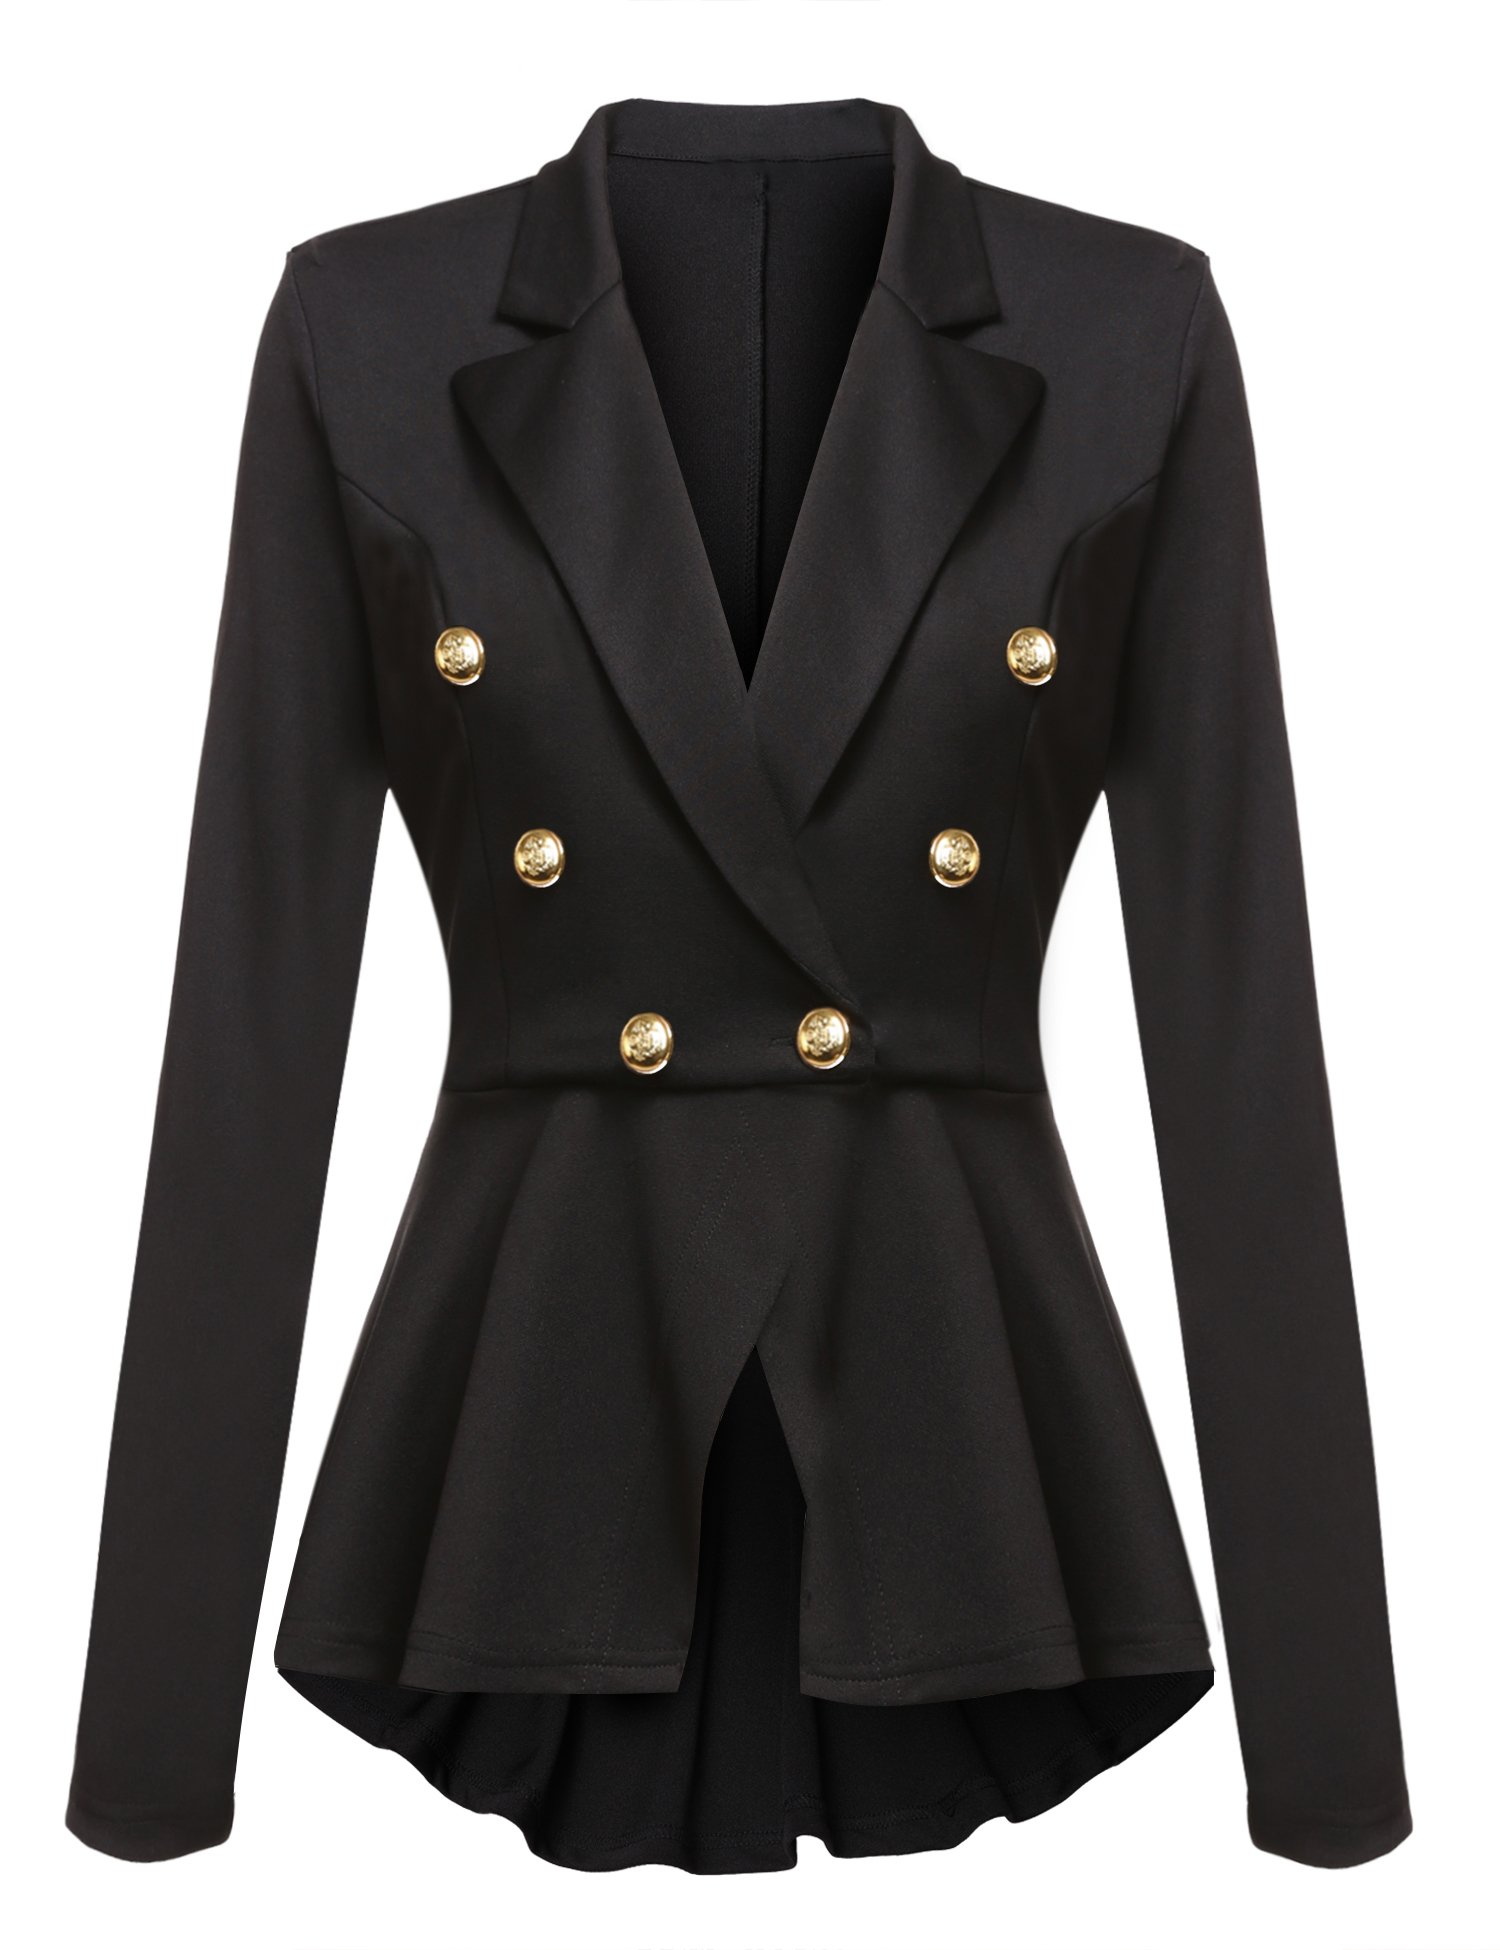 Gumod Women's Casual Work Solid Color Knit Blazer With Gold Buttons Black XL